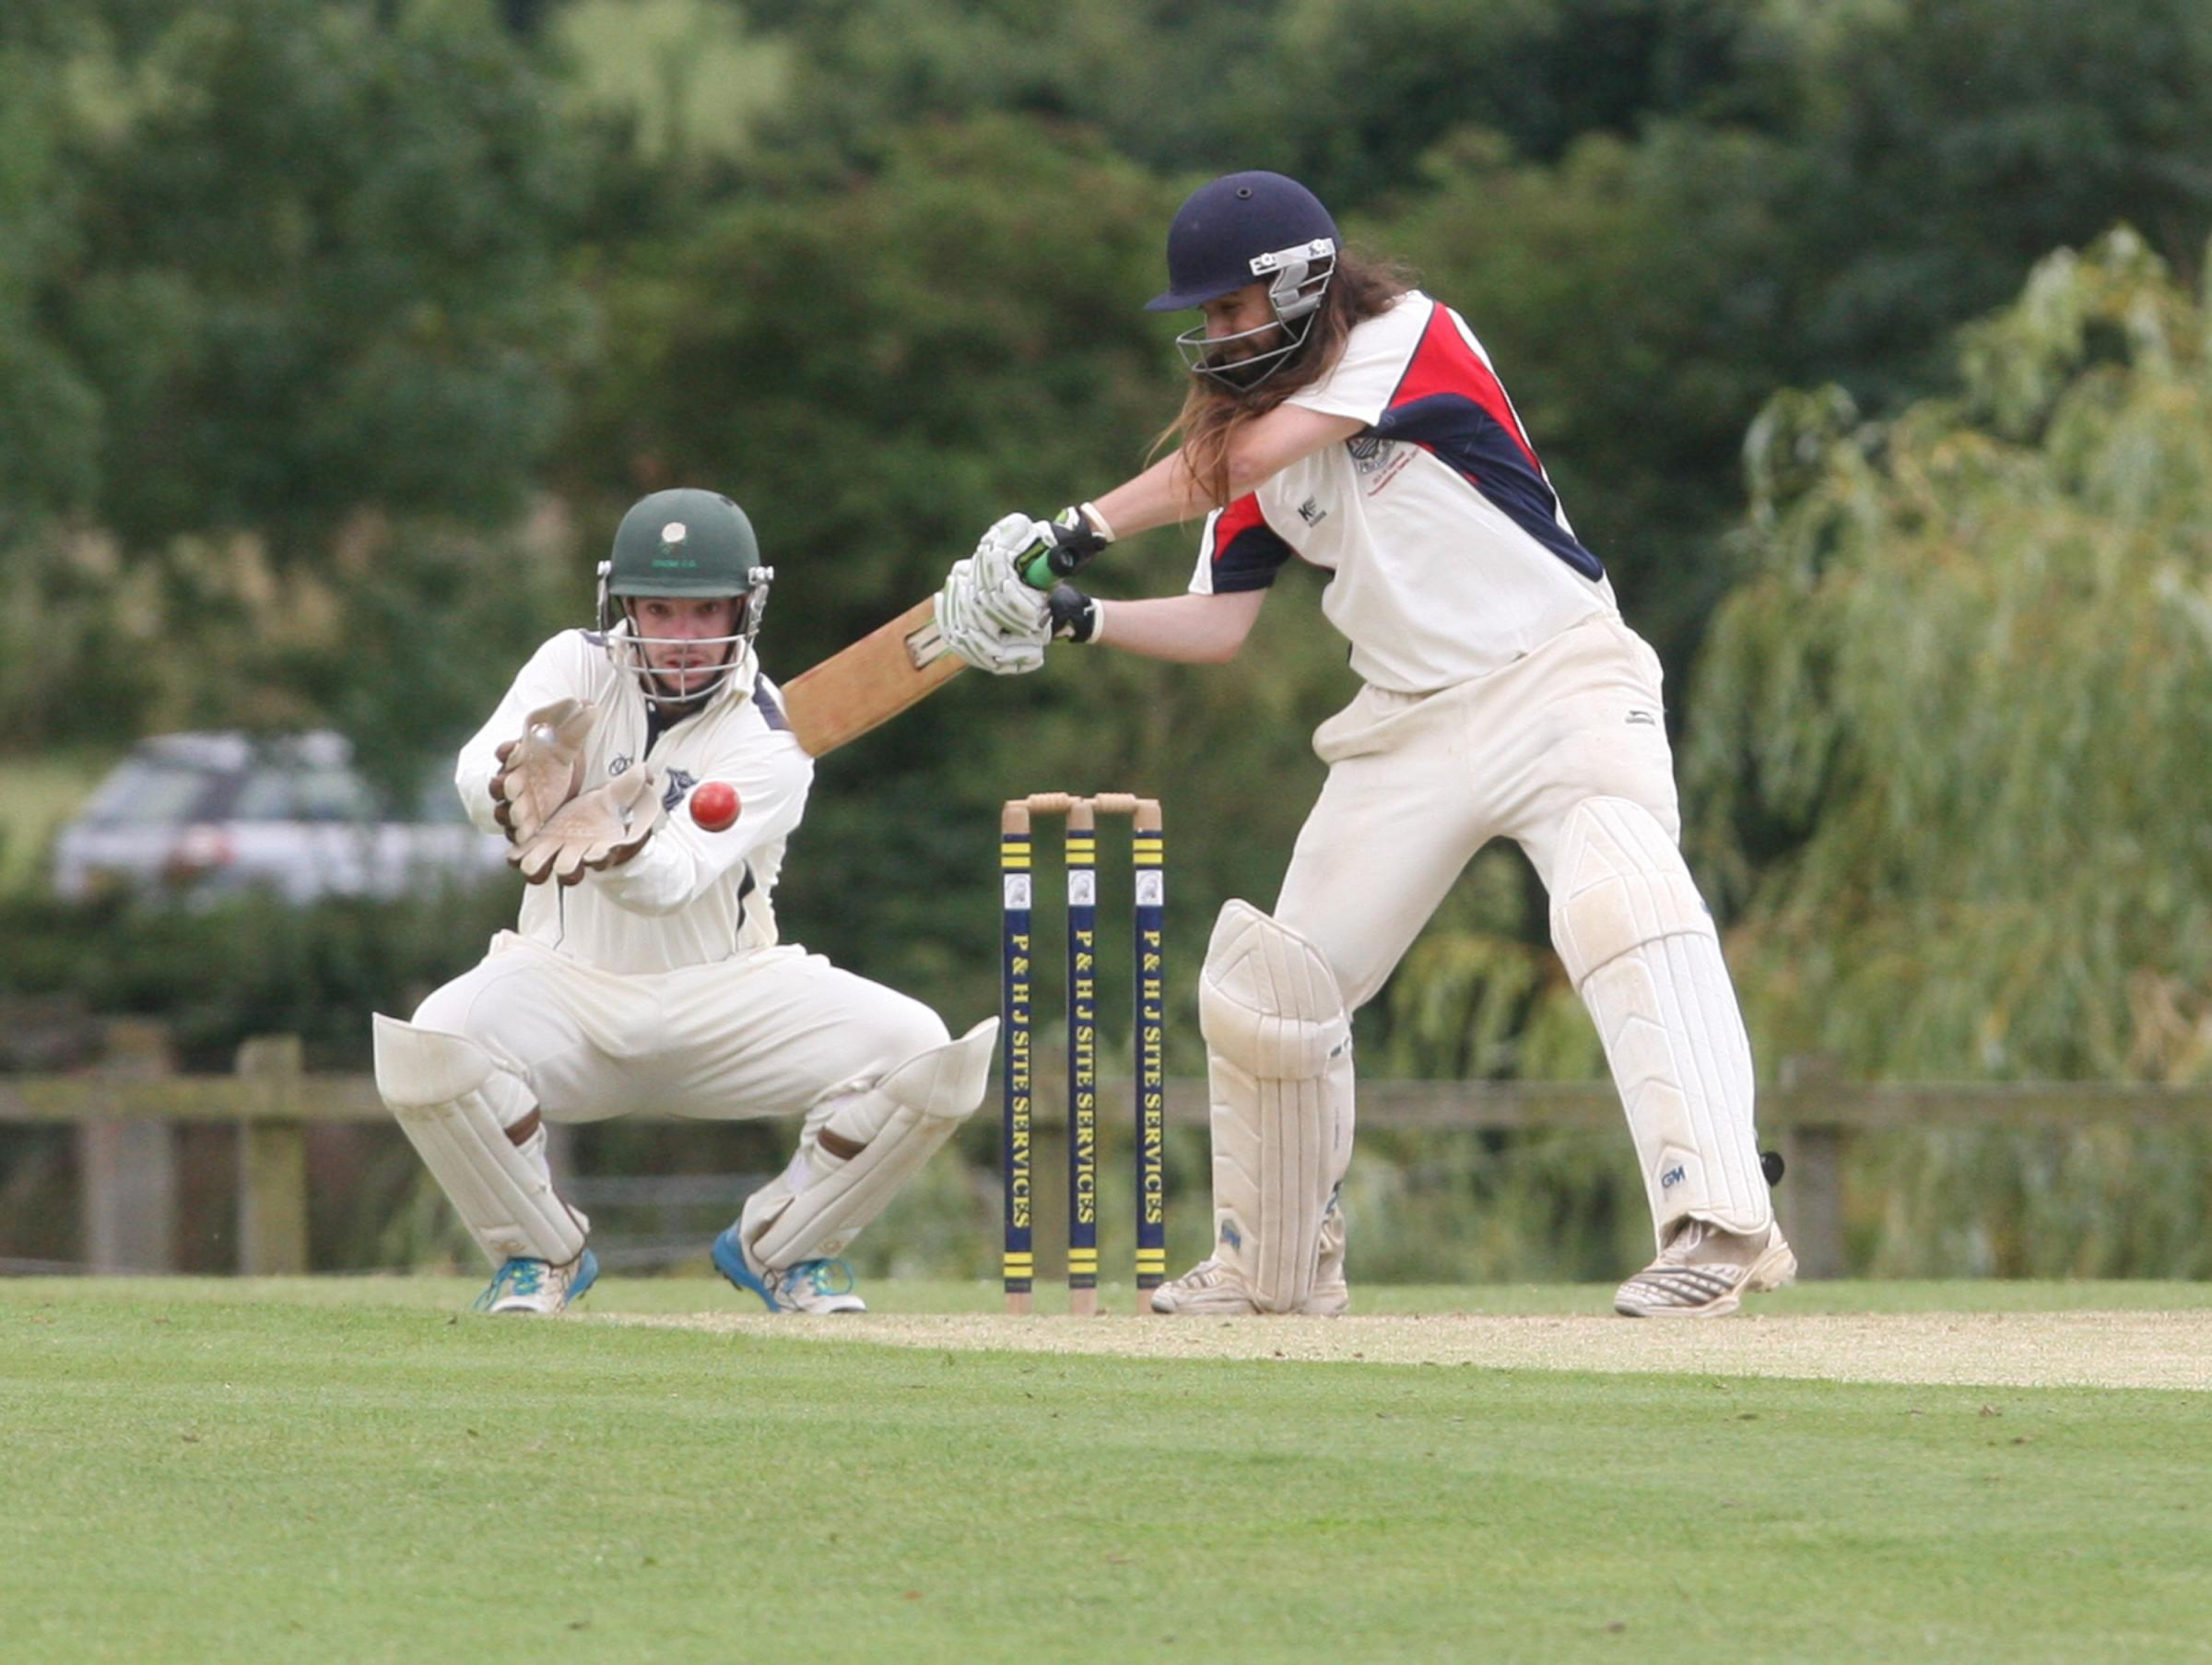 Billy Webb hit 42 for Wootton & Boars Hill